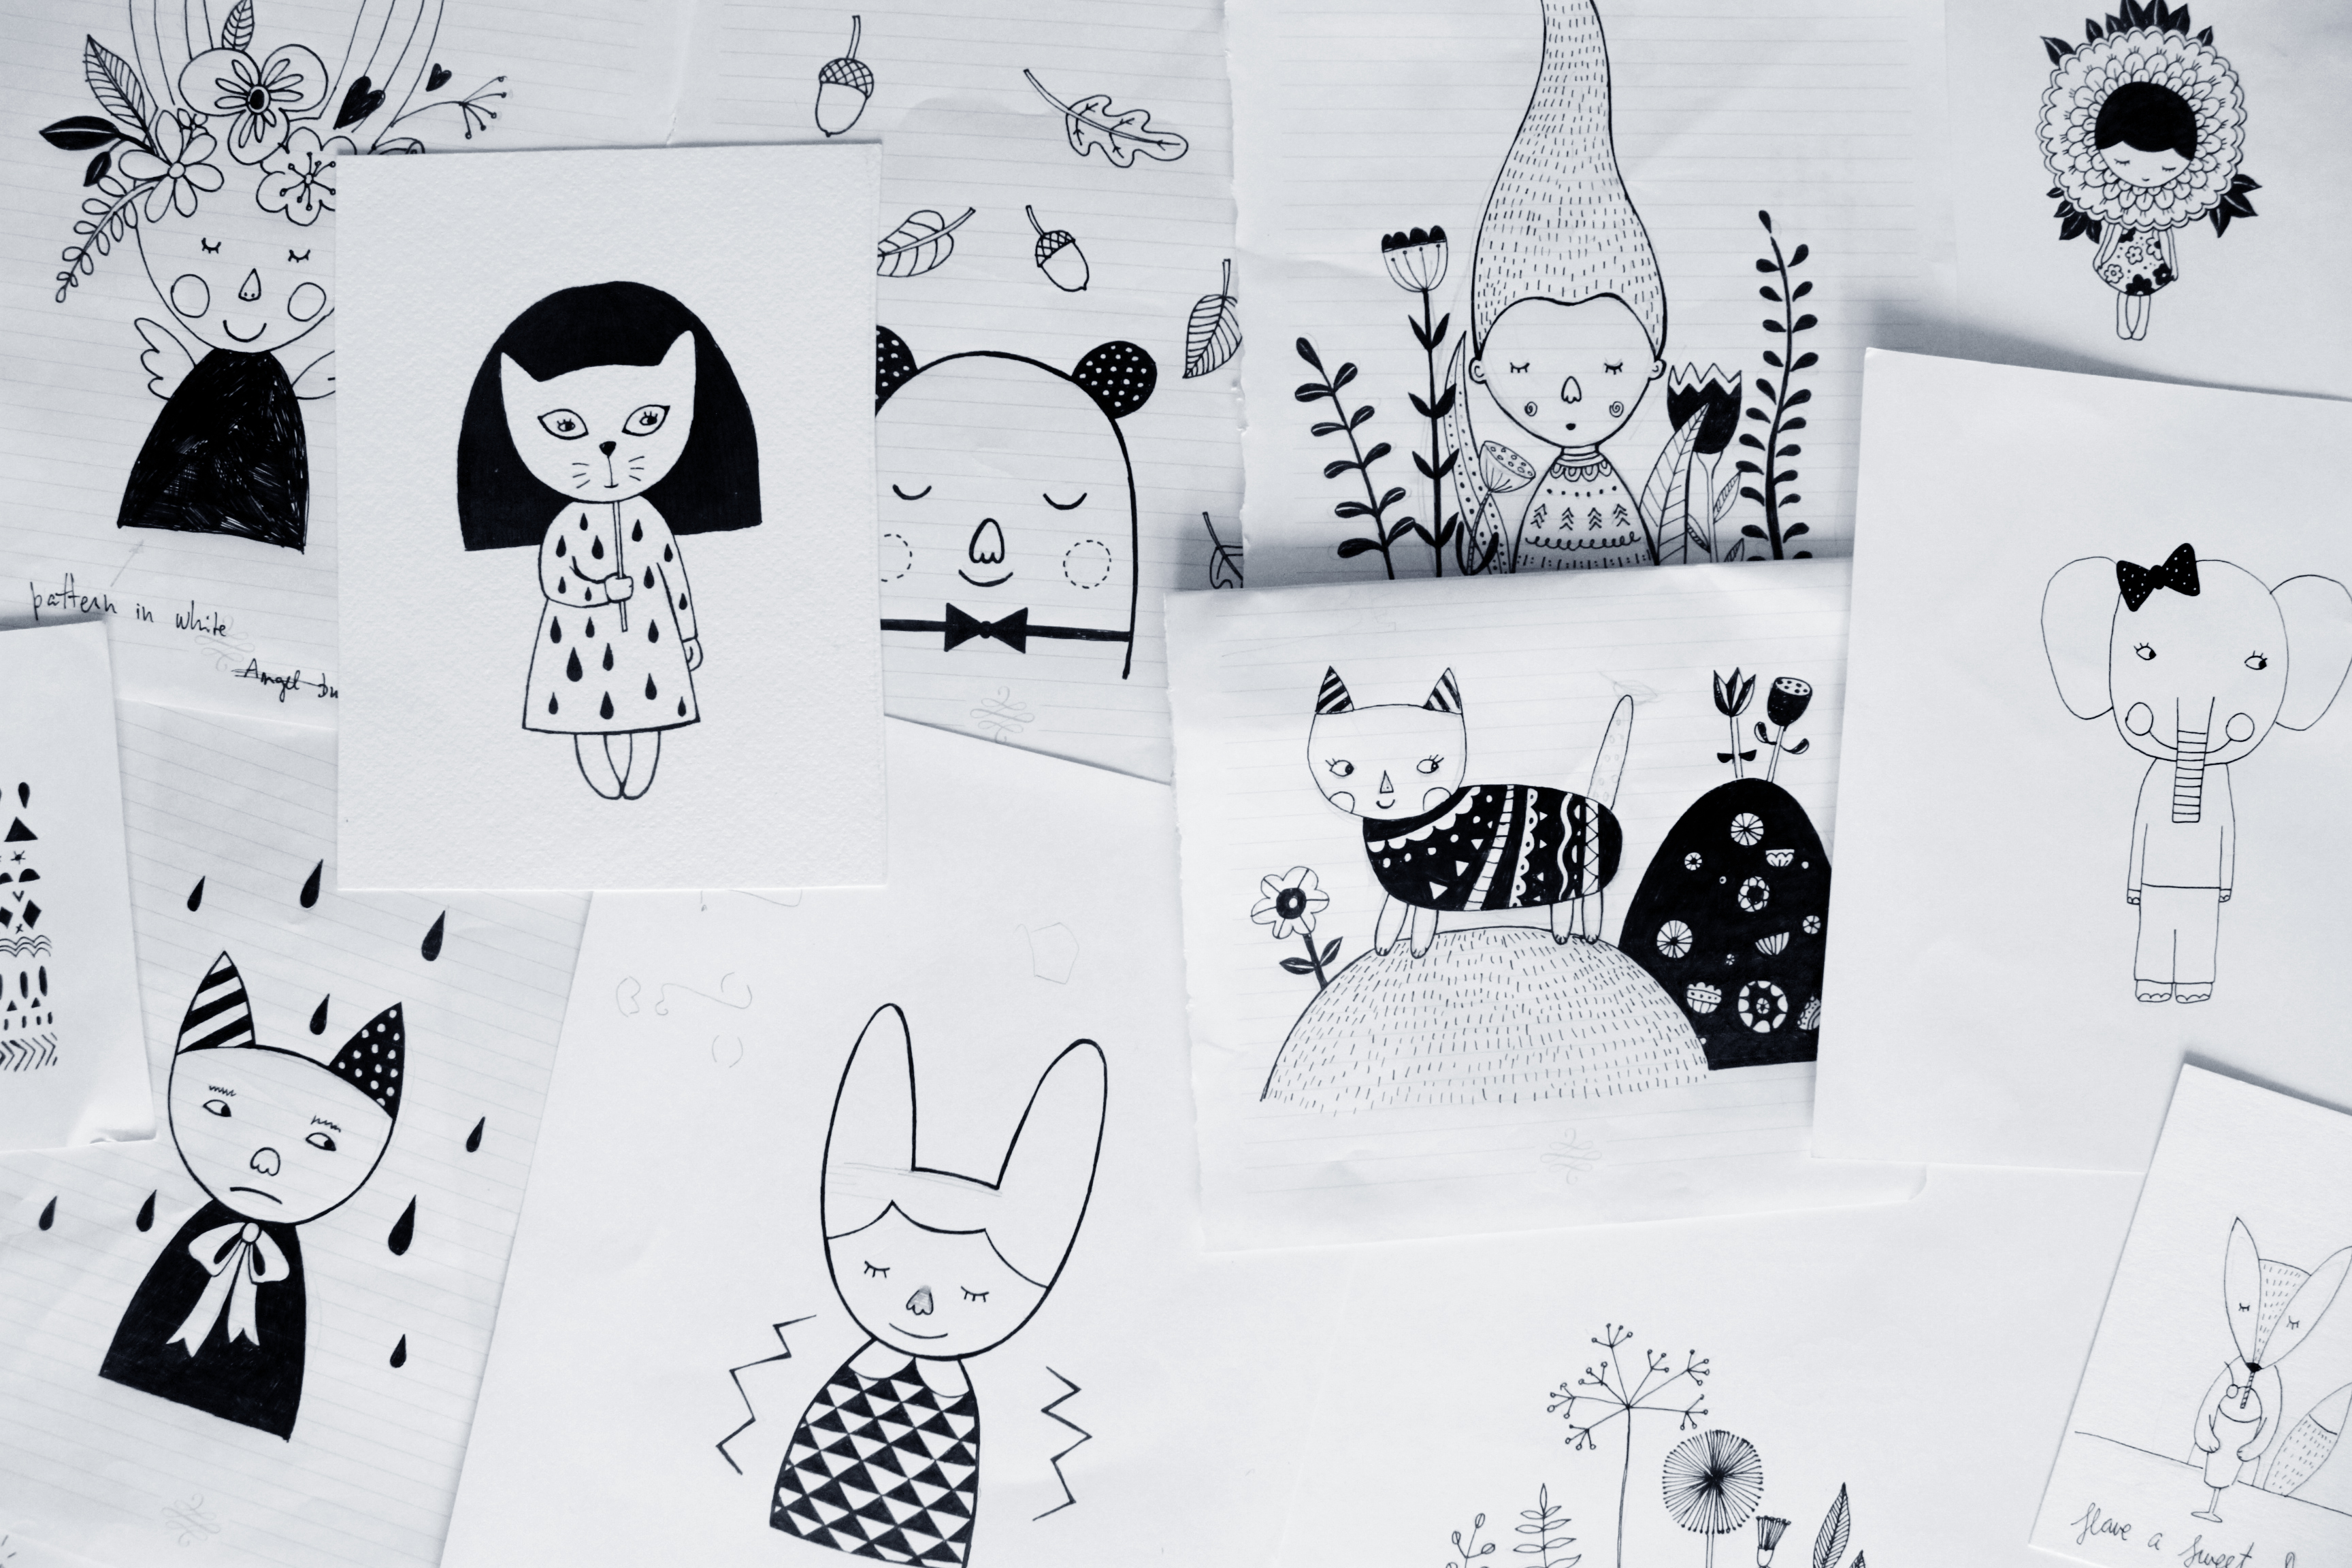 Some of Egle's charming sketches, that she sells online as downloadables and prints